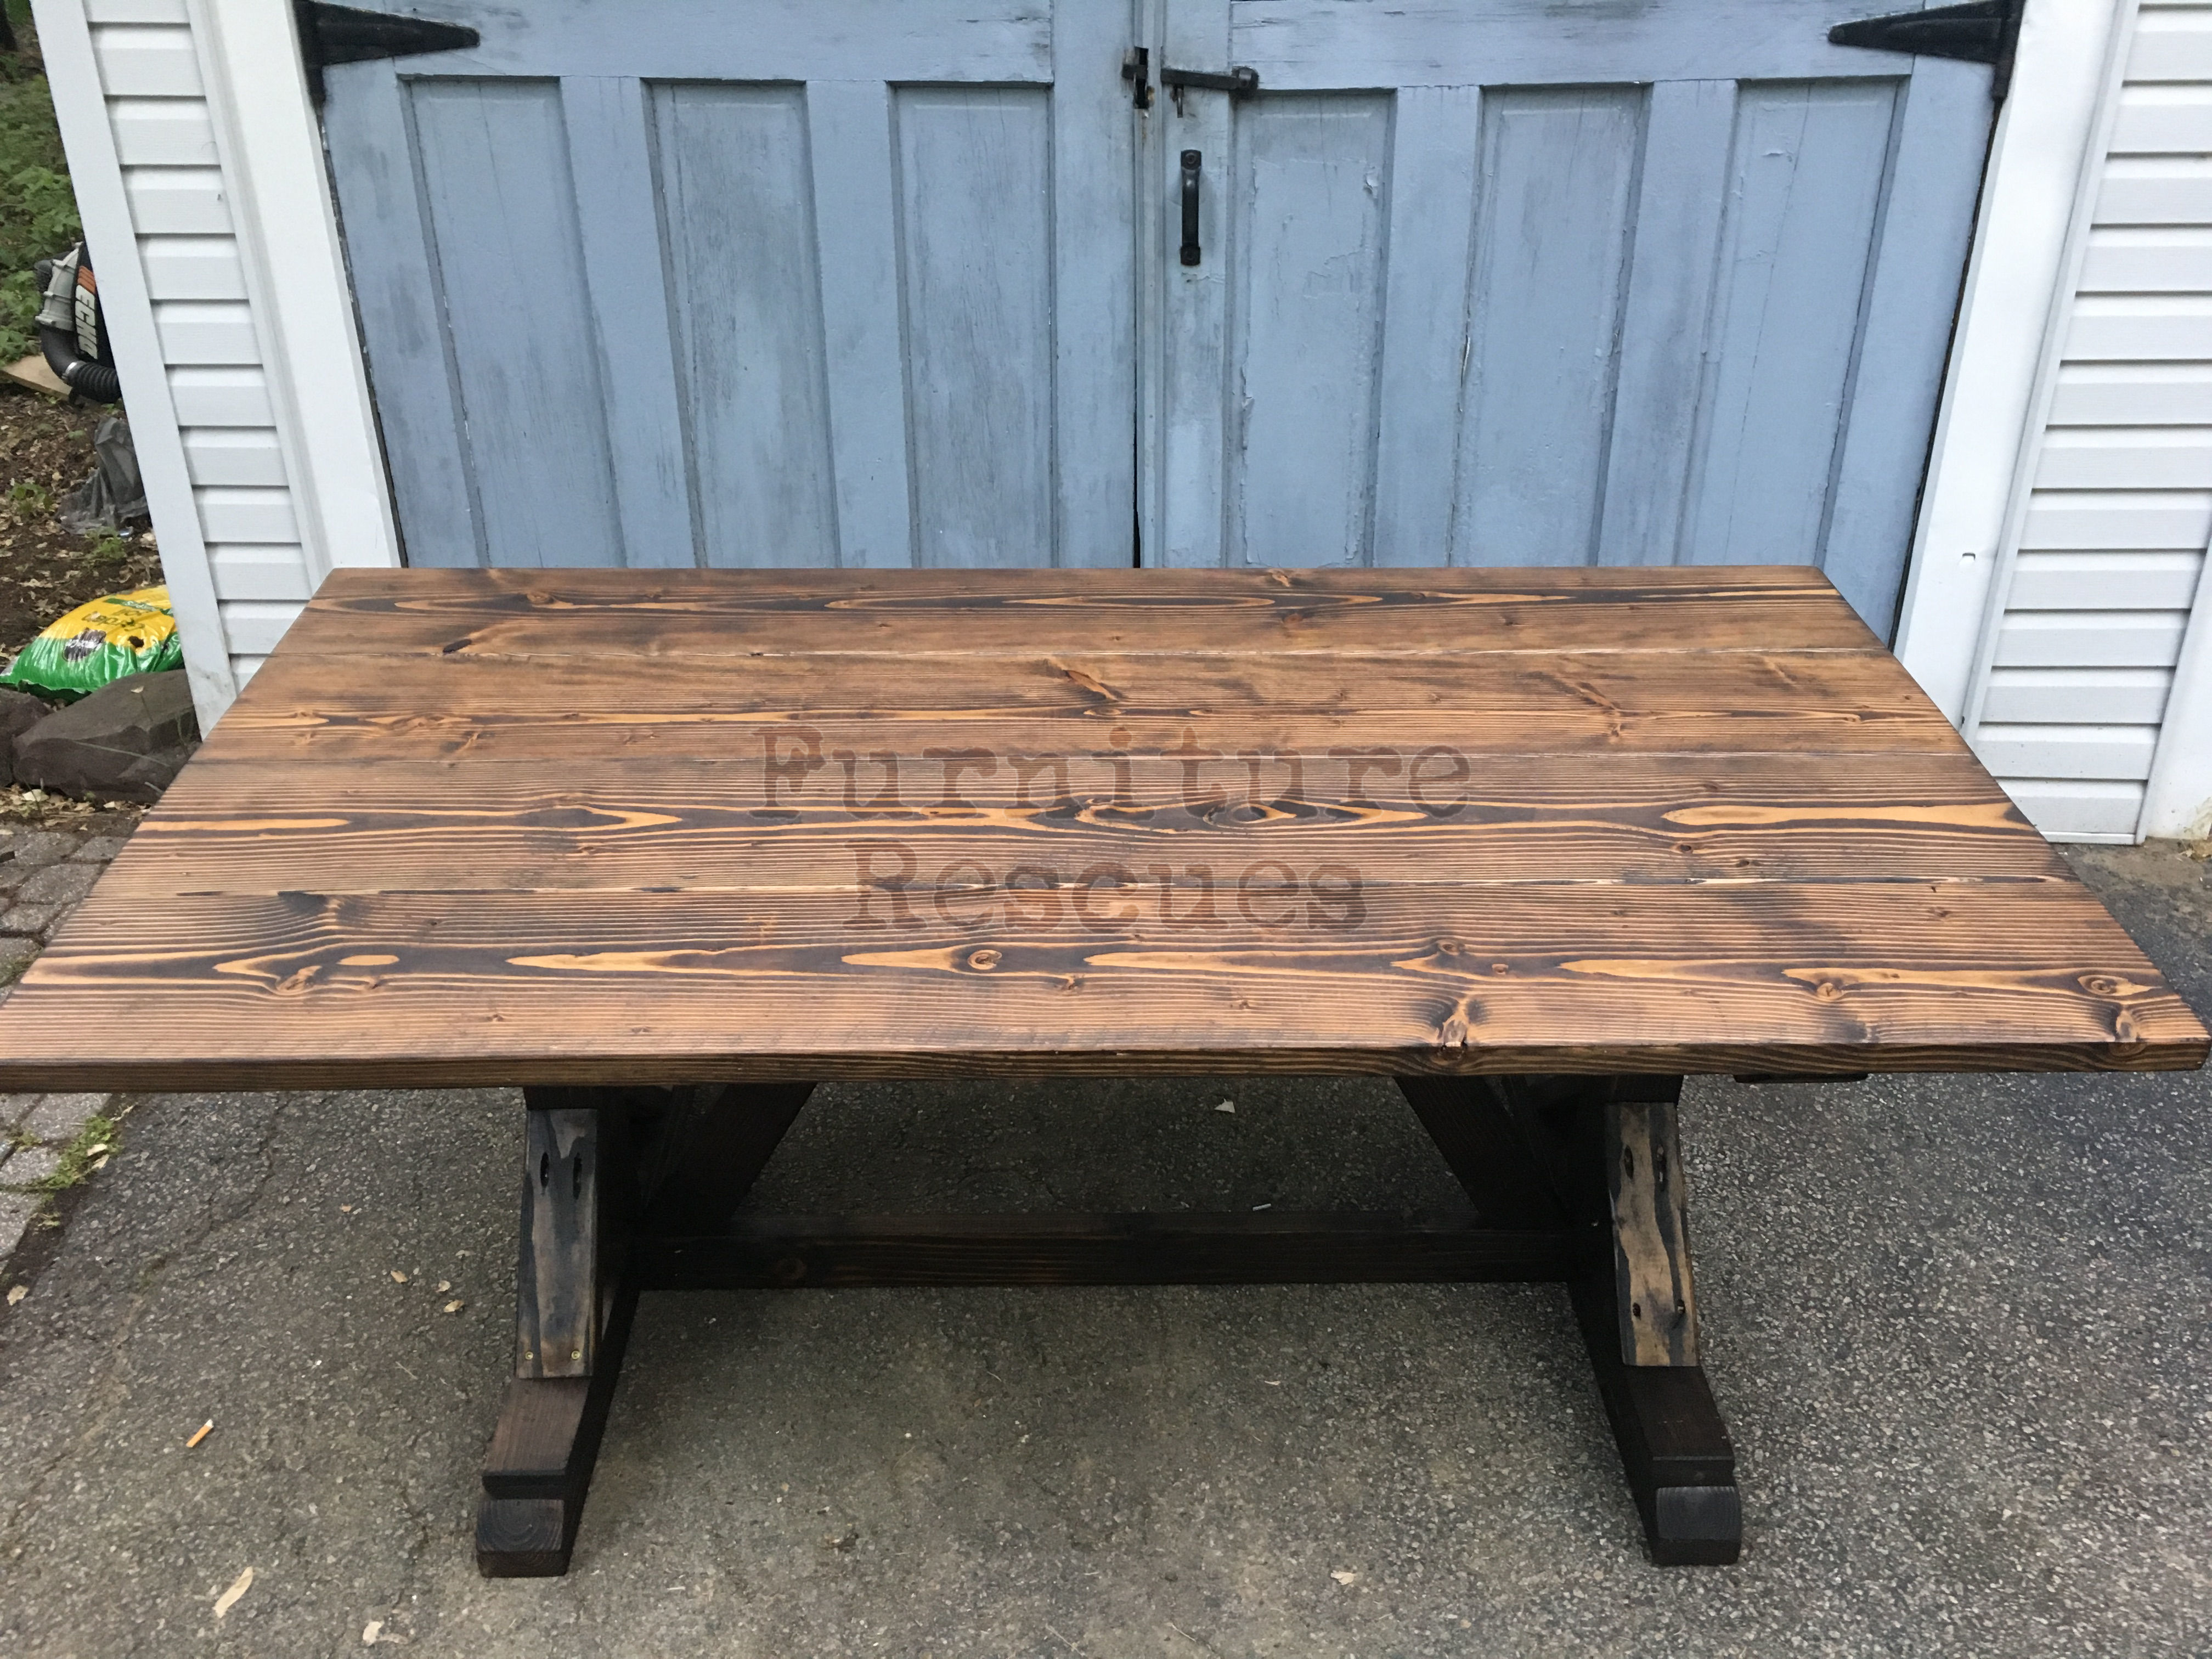 Farm style rustic dining table furniture rescues for Rustic farm table chairs